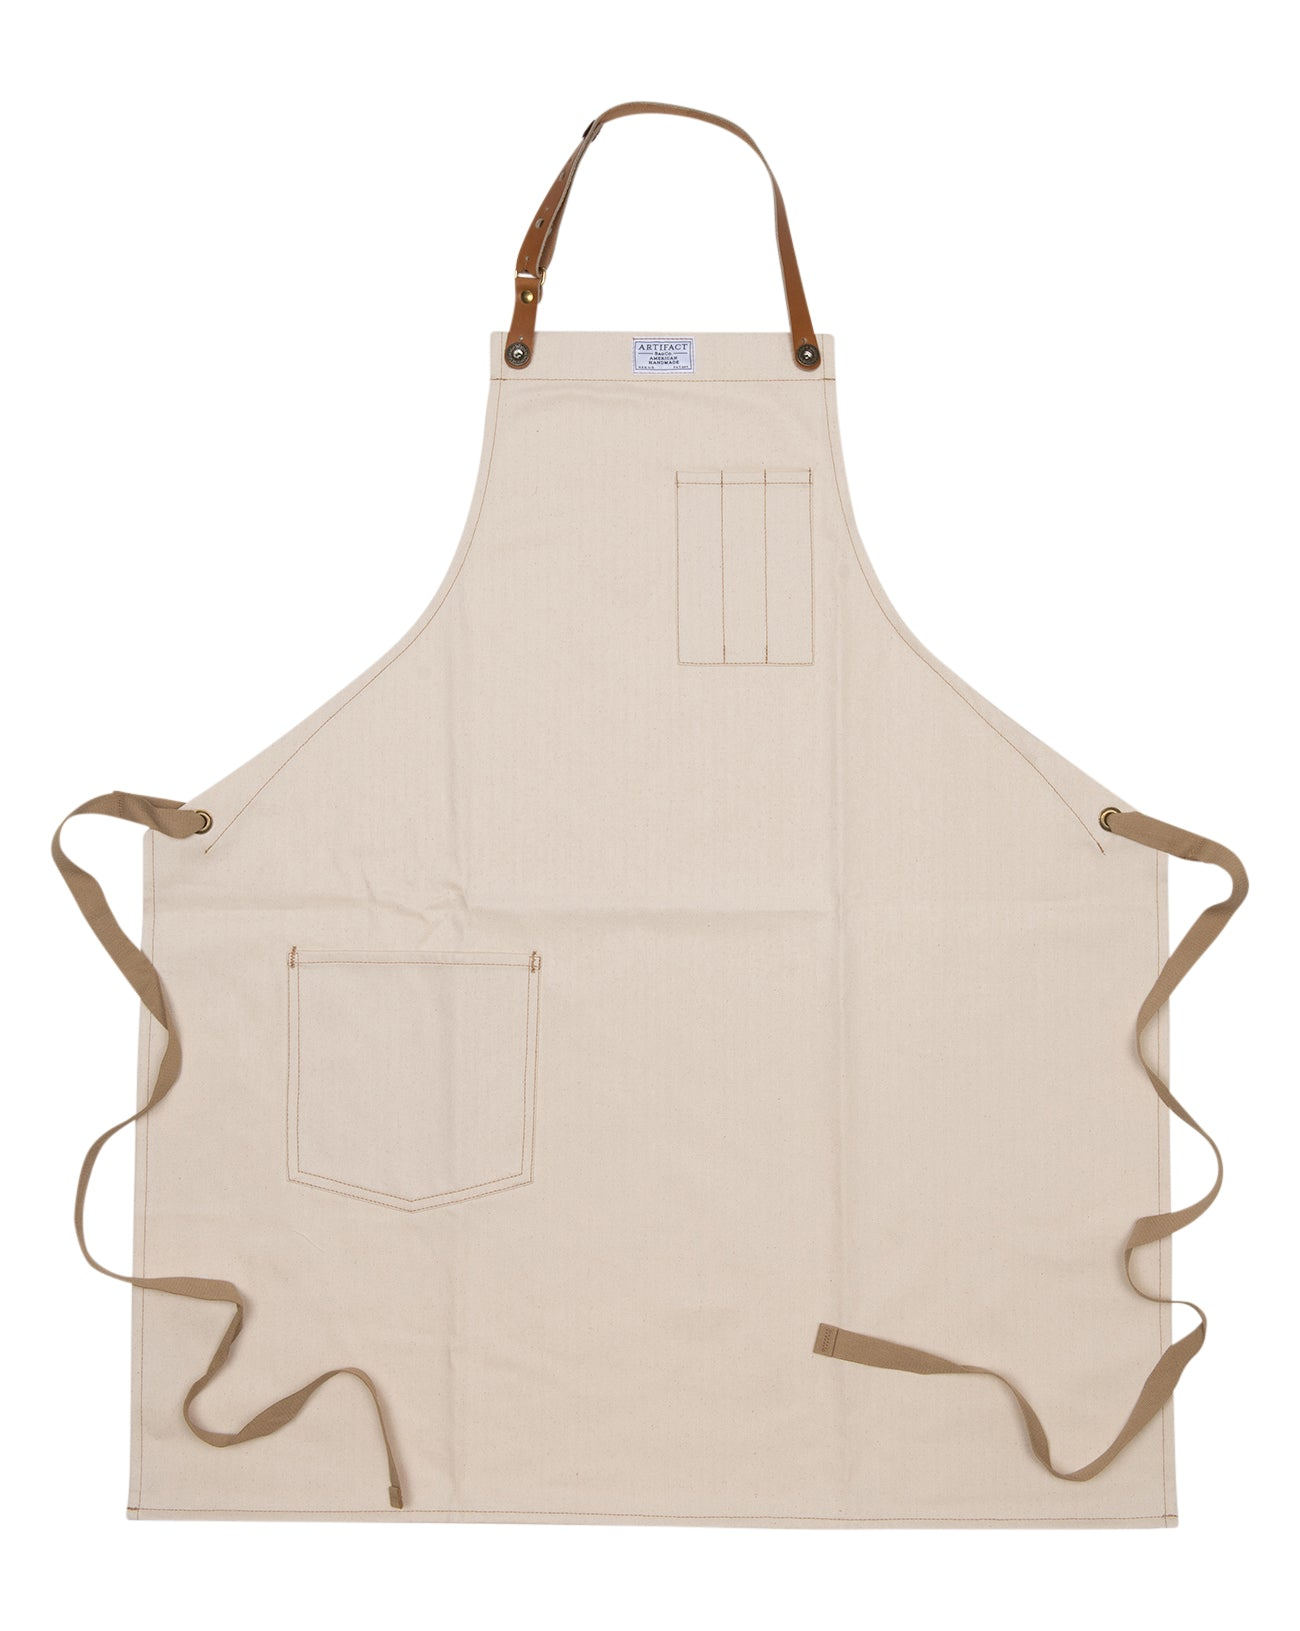 Artifact Natural White Herringbone Twill Apron w/ Leather Strap - Universal Fit